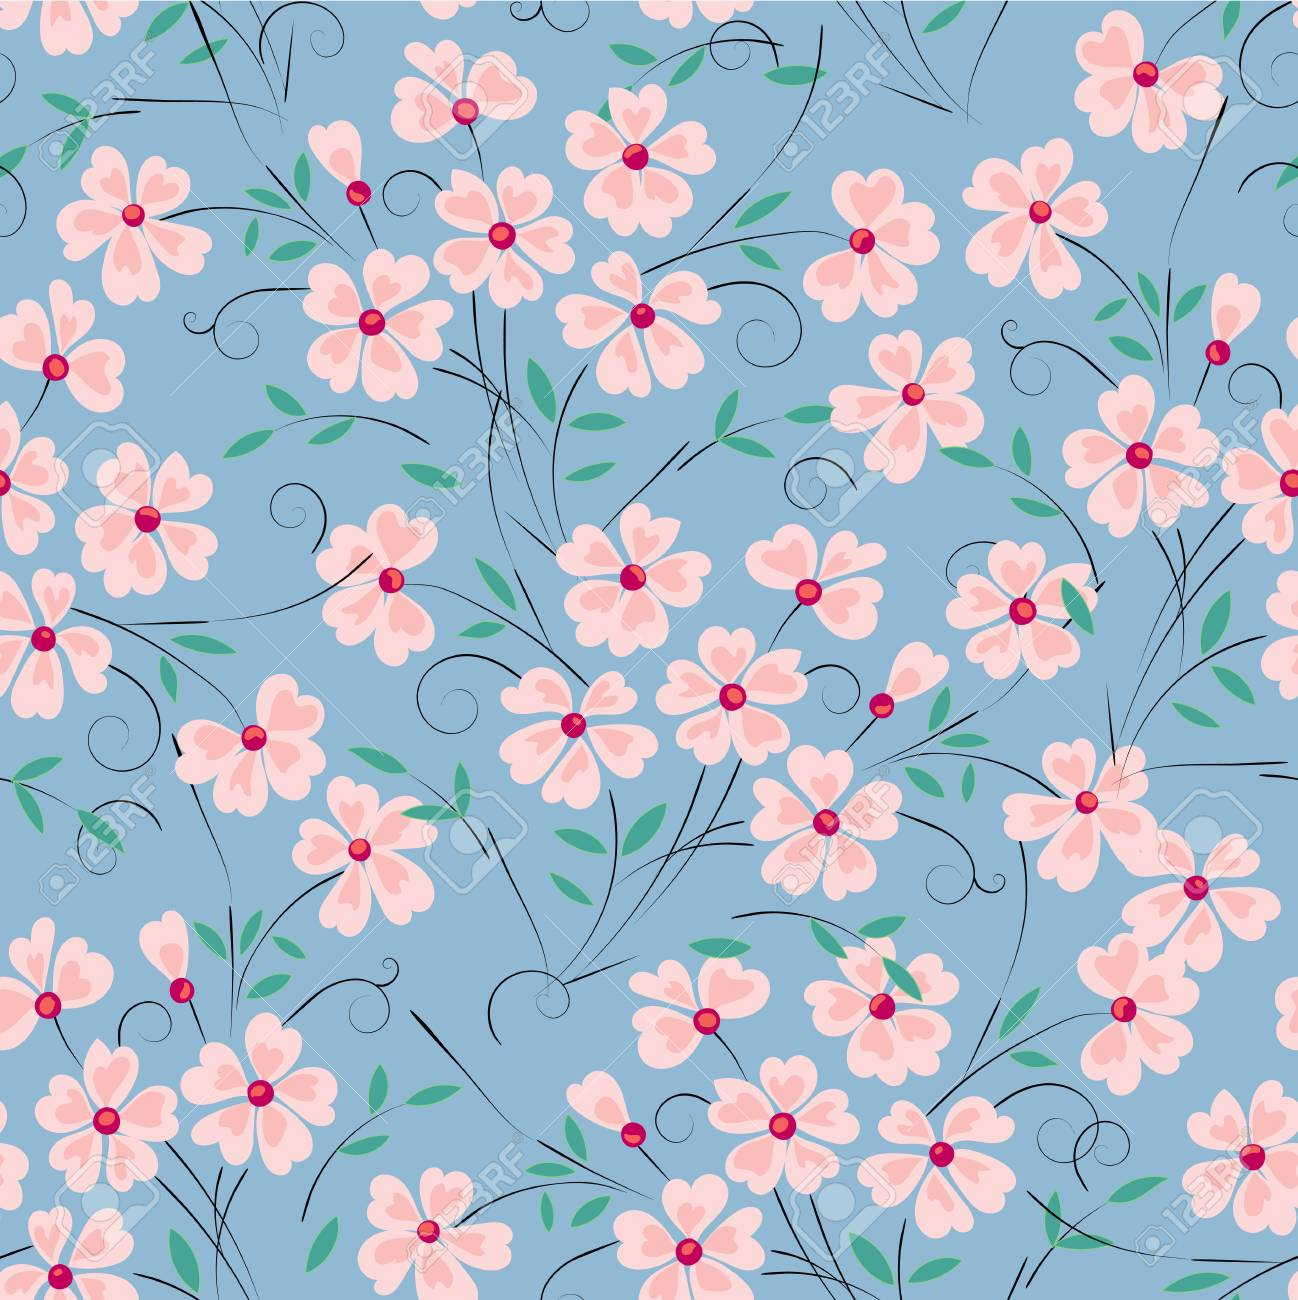 Abstract Pink Flower On A Turquoise Background For Design Use